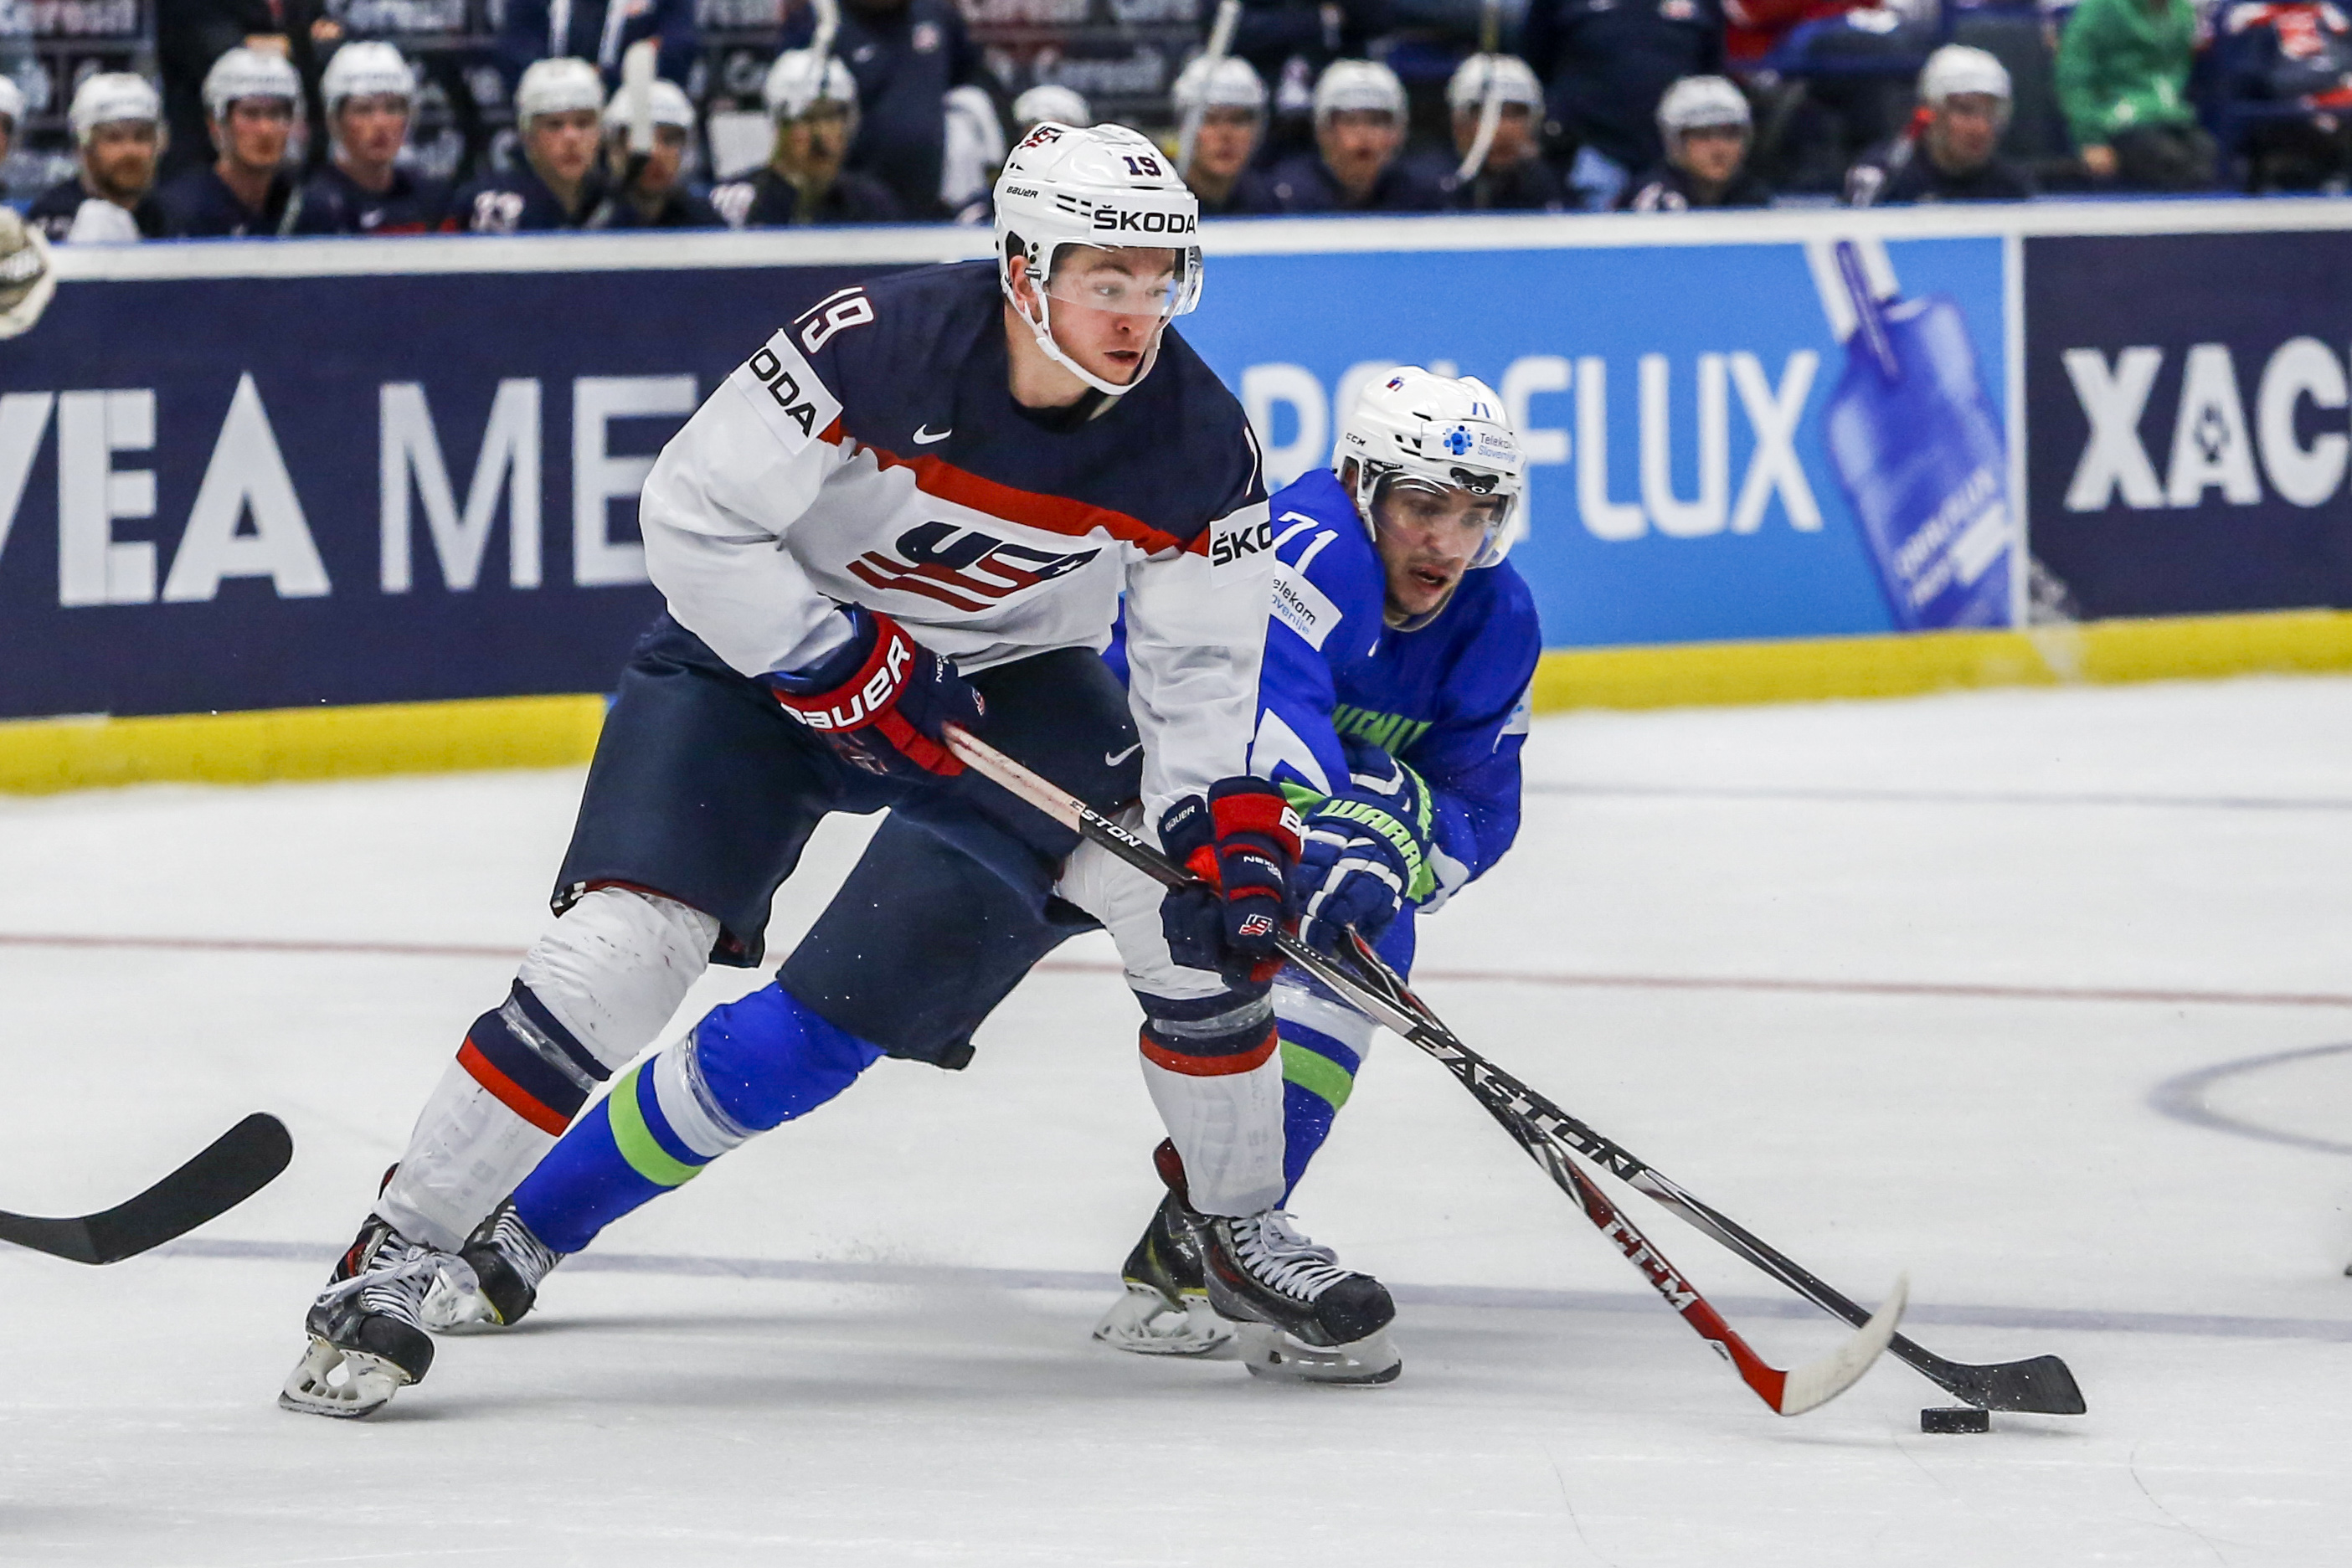 Jimmy Vesey battles for the puck for the U.S. team during the 2015 IIHF World Championship tournament in Ostrava, Czech Republic. (Getty Images)